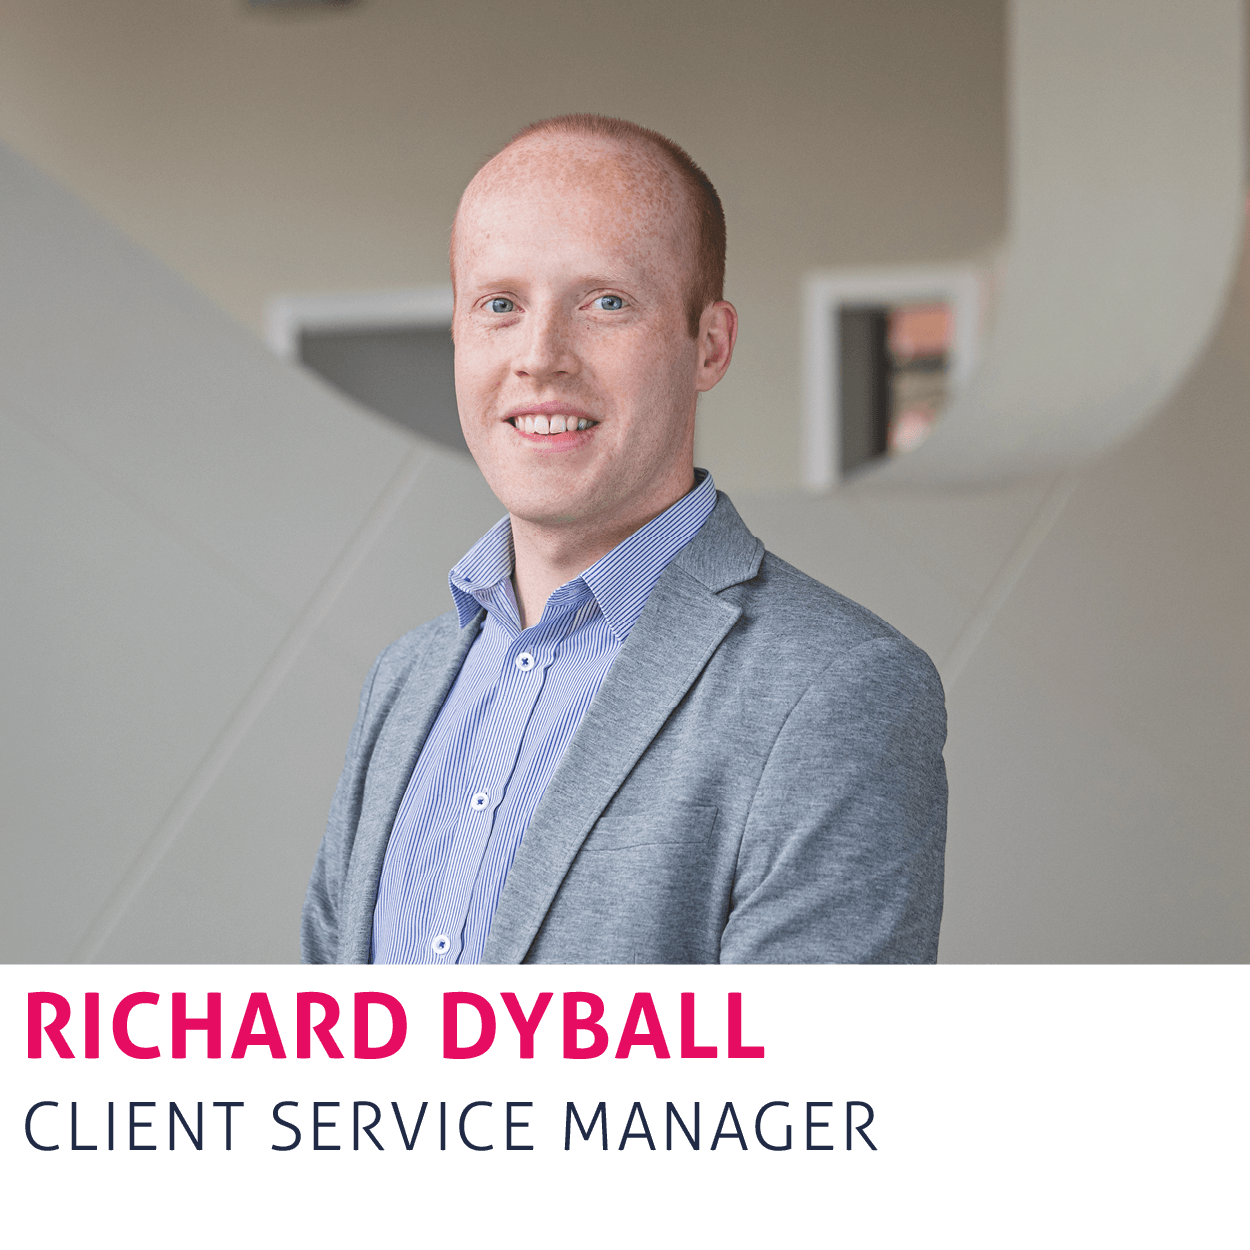 Richard Dyball, Client Service Manager